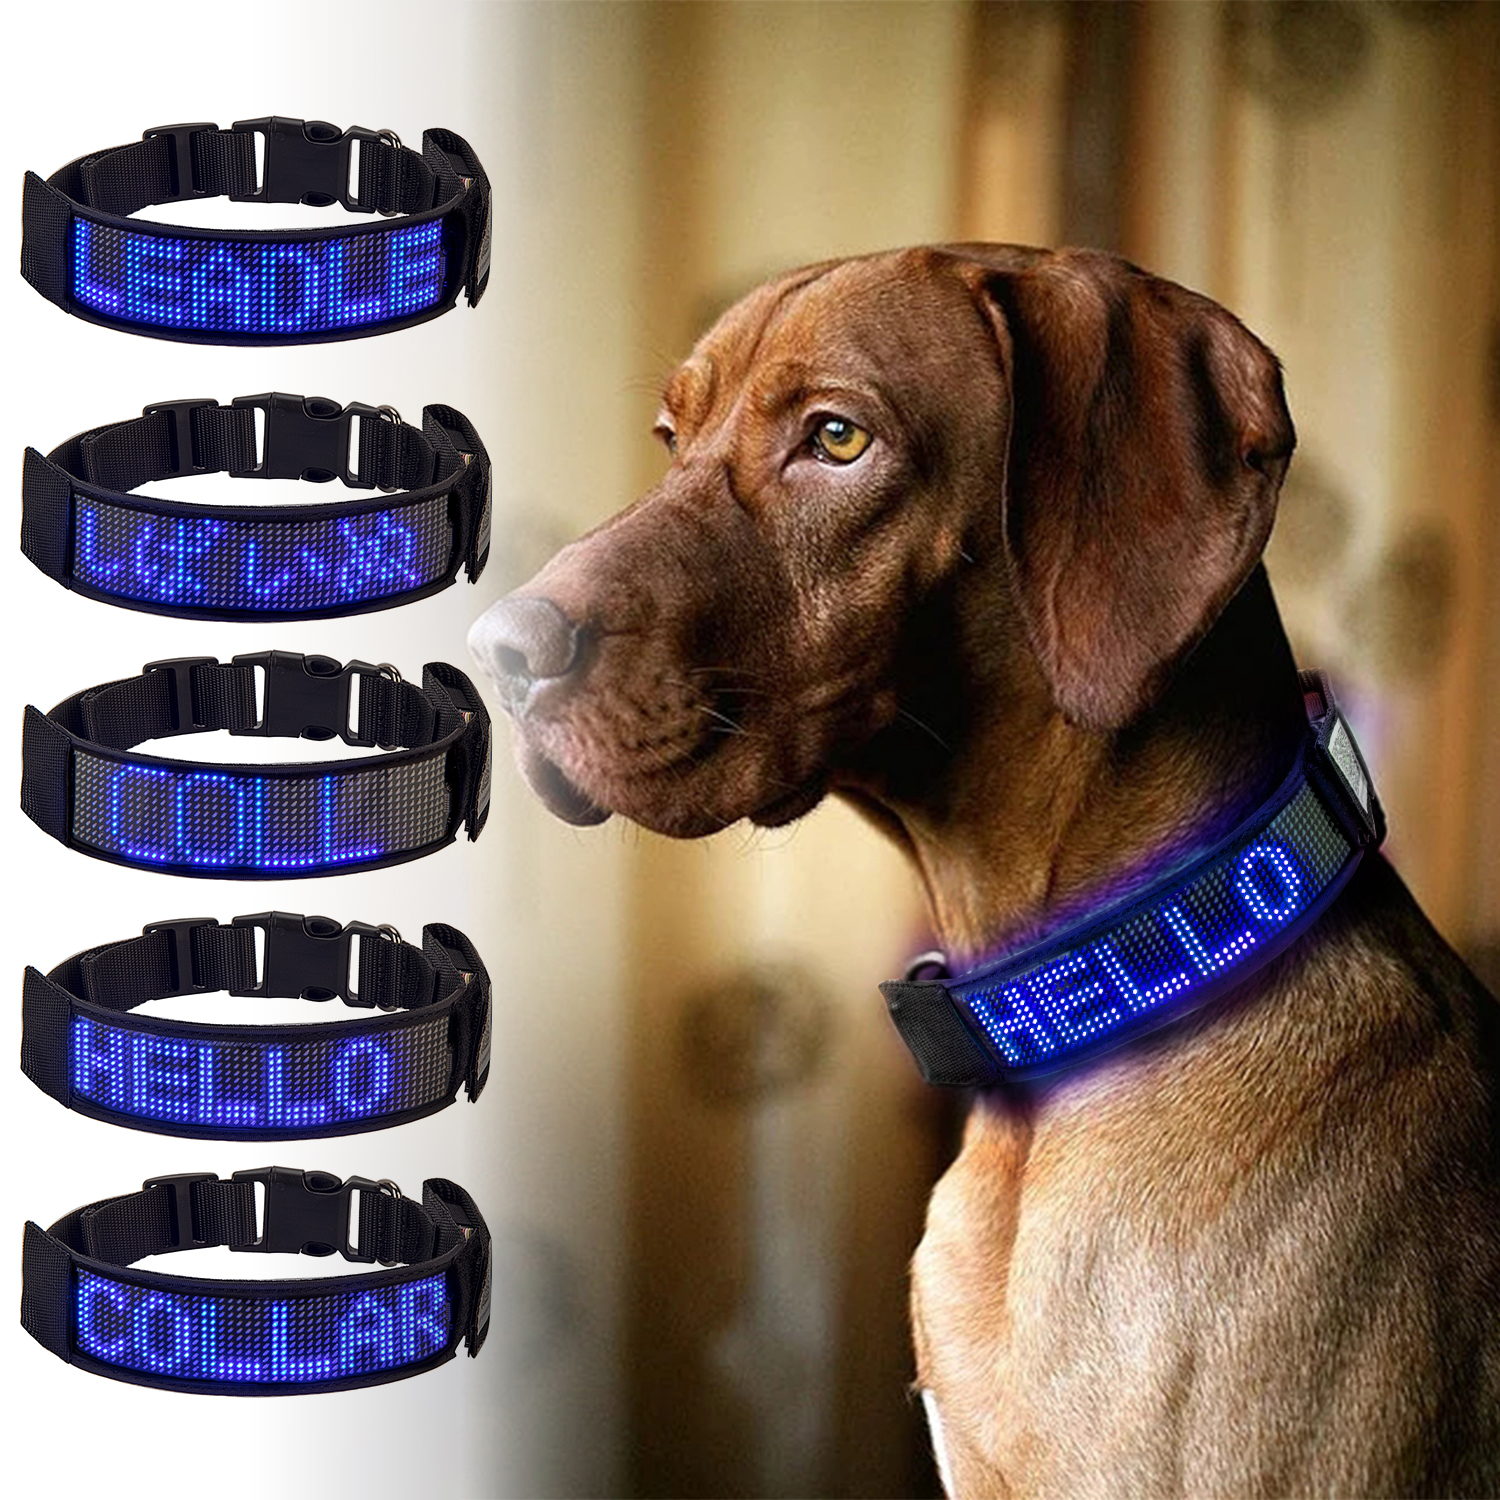 Led Pet Collars Rechargeable Programmable Fast Charge Easy Customize Ready to Wear Works in All Weather